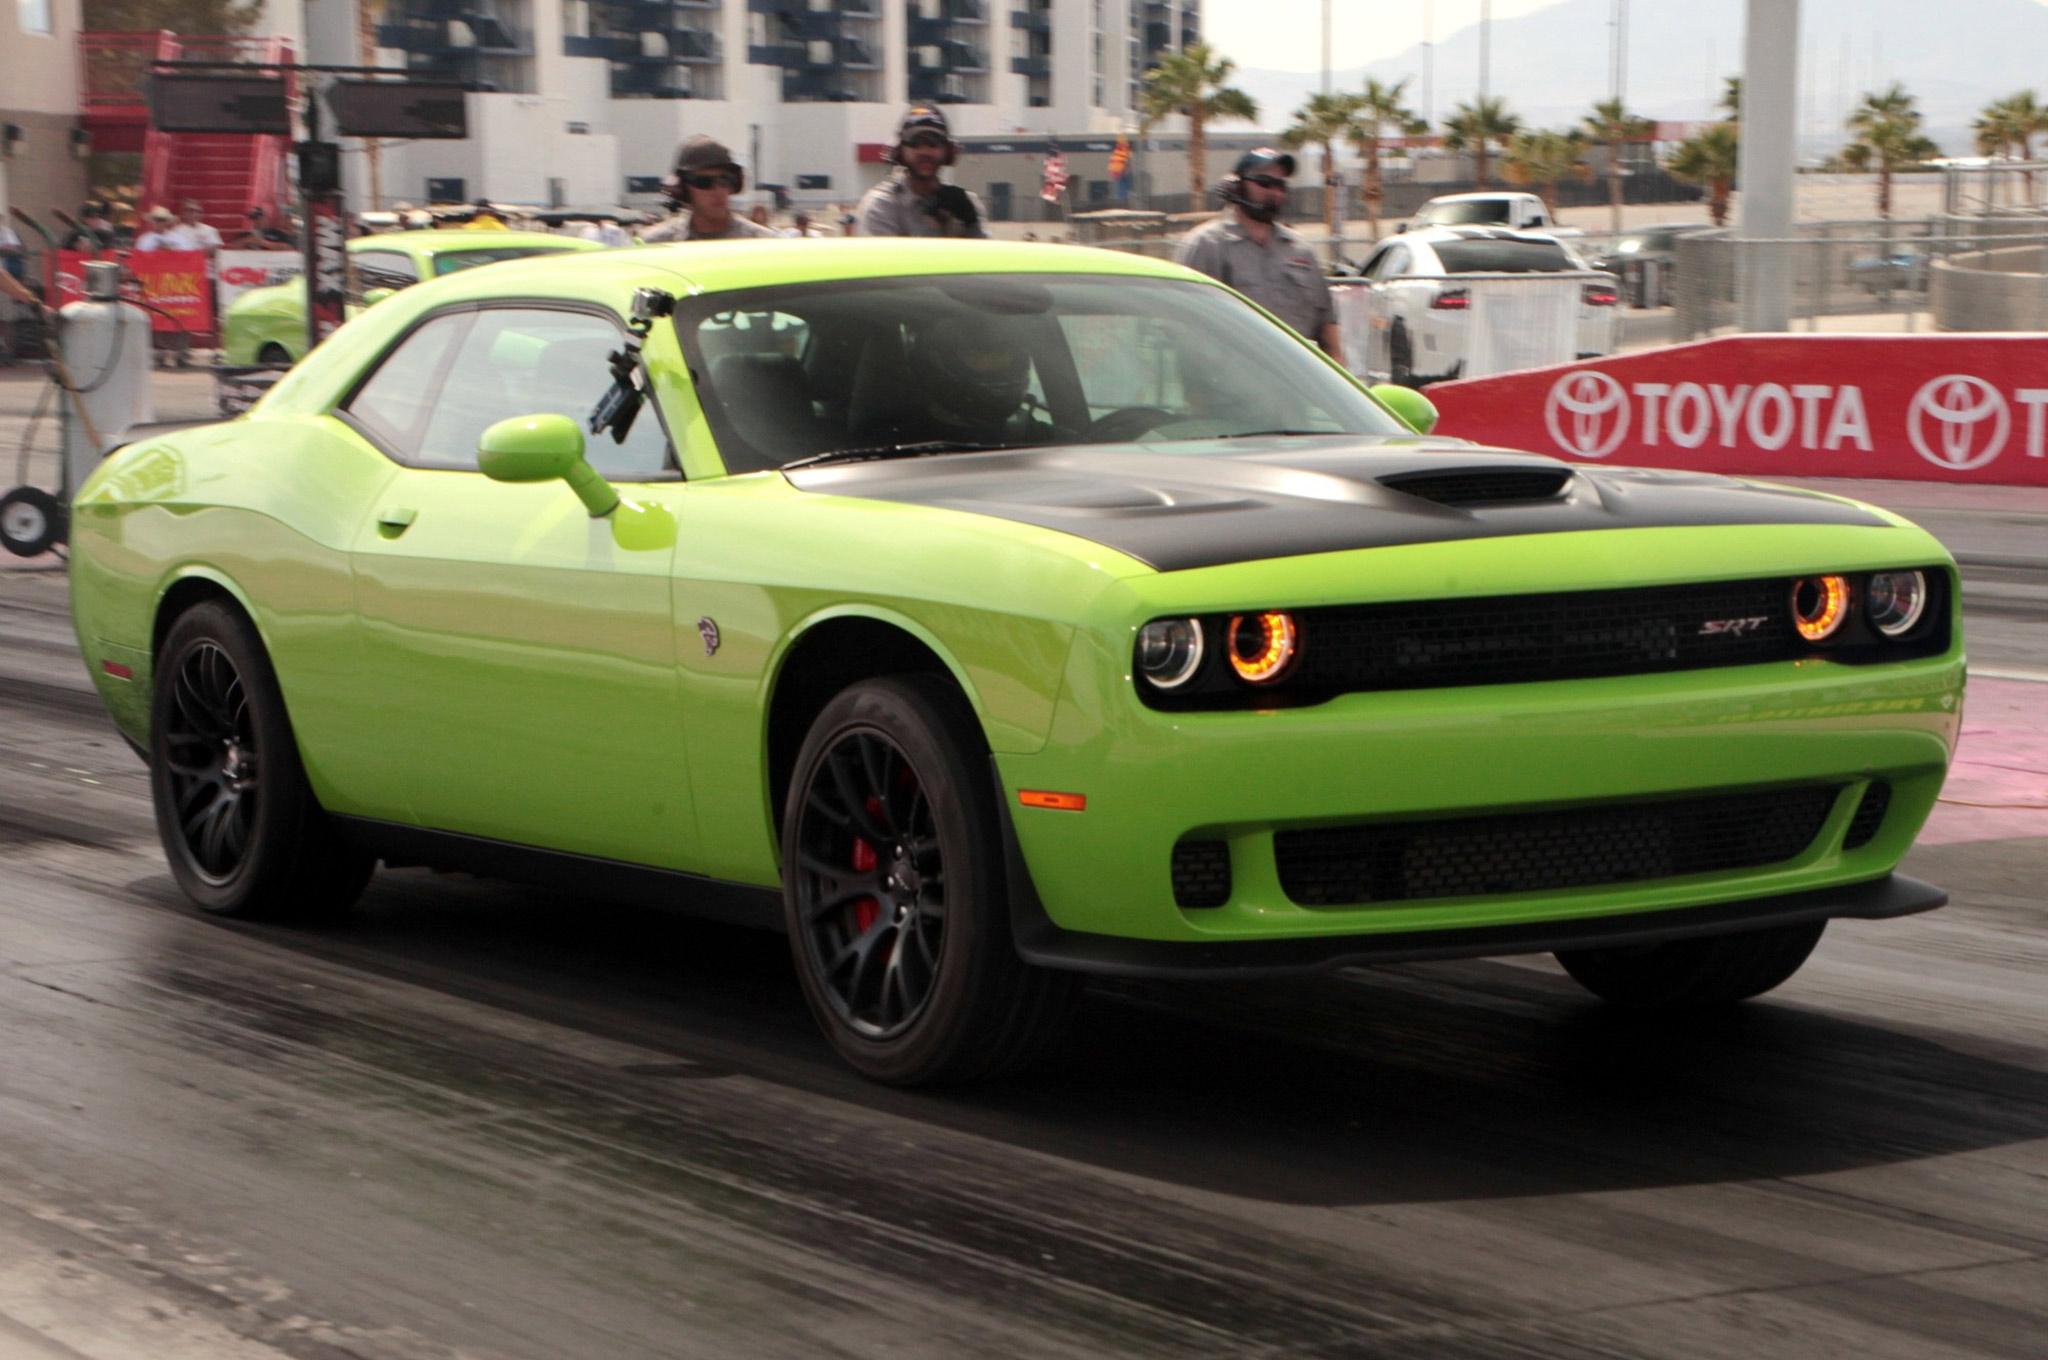 Number-two qualifier Josh Mitton and his Sublime Pearl 2016 Challenger Hellcat carried our GoPro camera for the Hellcat Challenge highlight reel video. Bill Ewell took him out in the semi-final round when Mitton slowed to a tire-spinning 11.81.